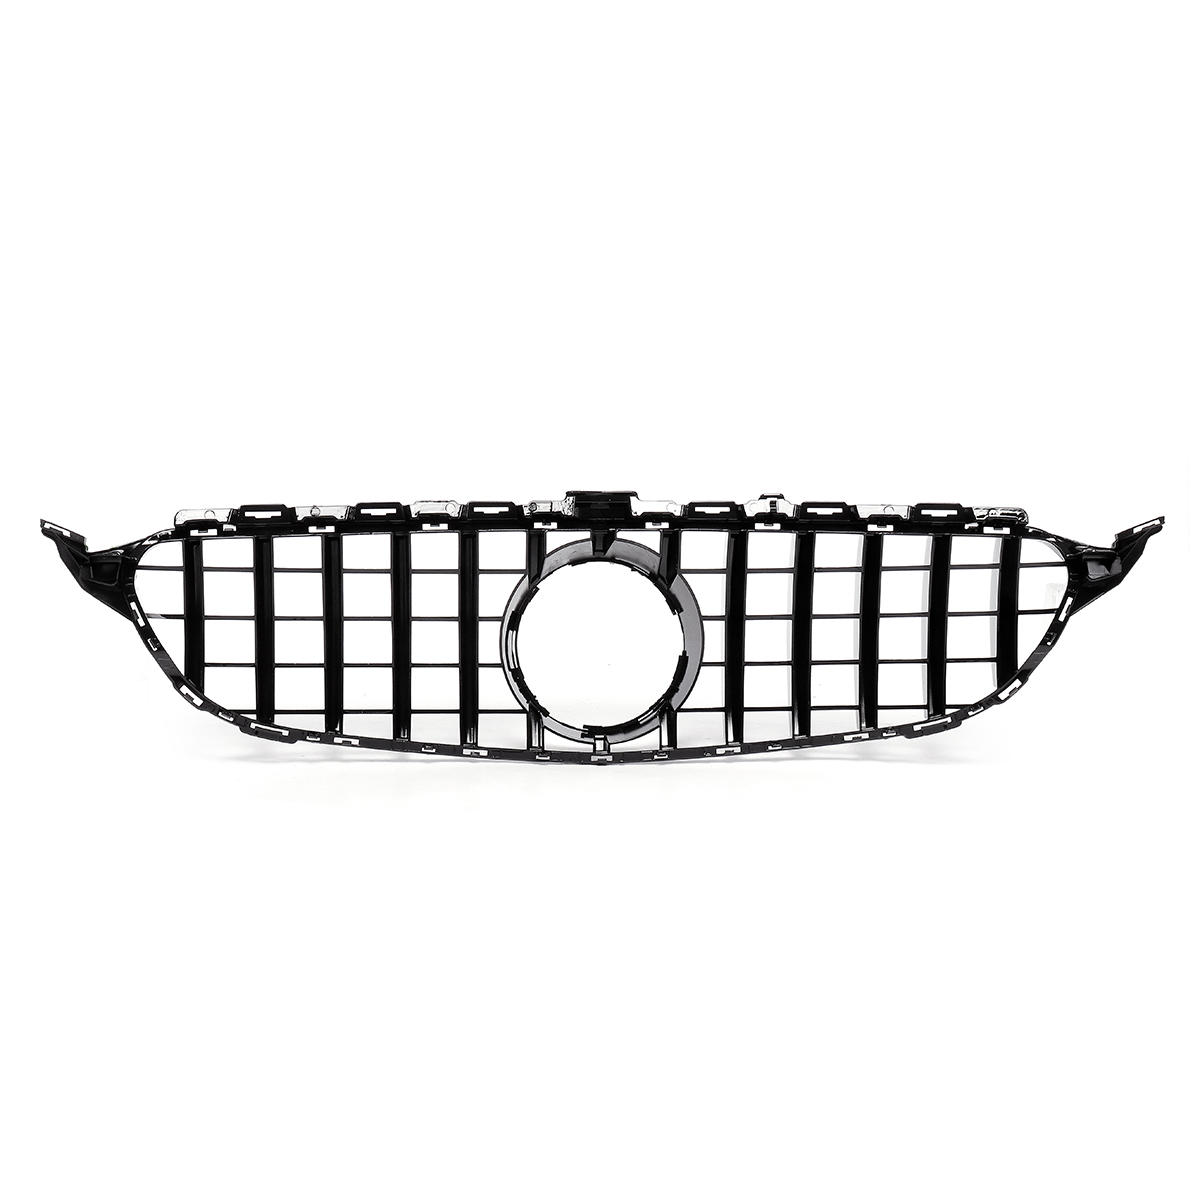 GTR Upper Grille Grey For Mercedes Benz w205 AMG Look C200 C250 C300 C350 Silver 2015-2018